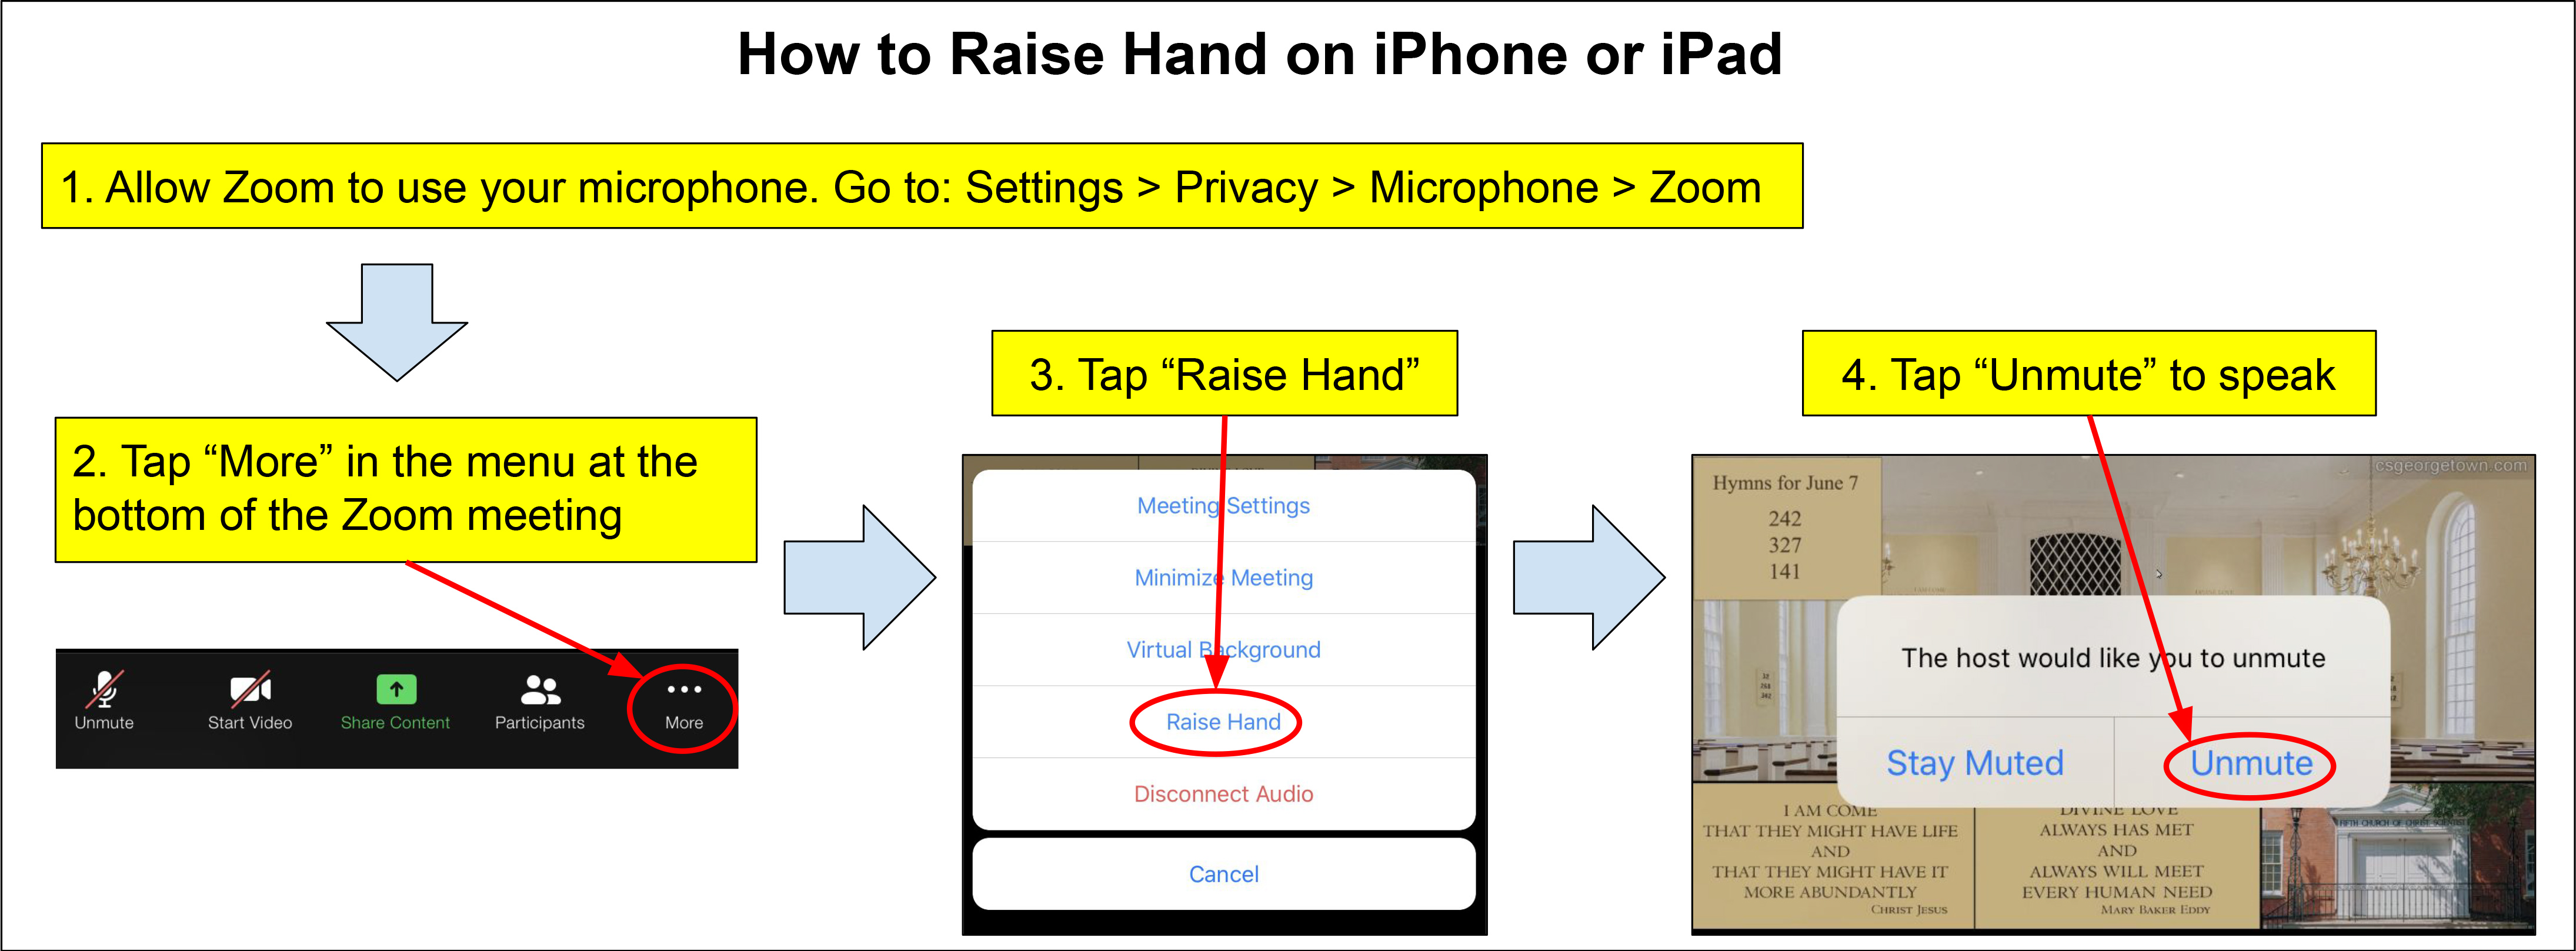 How to raise hand in Zoom using and iPad or iPhone